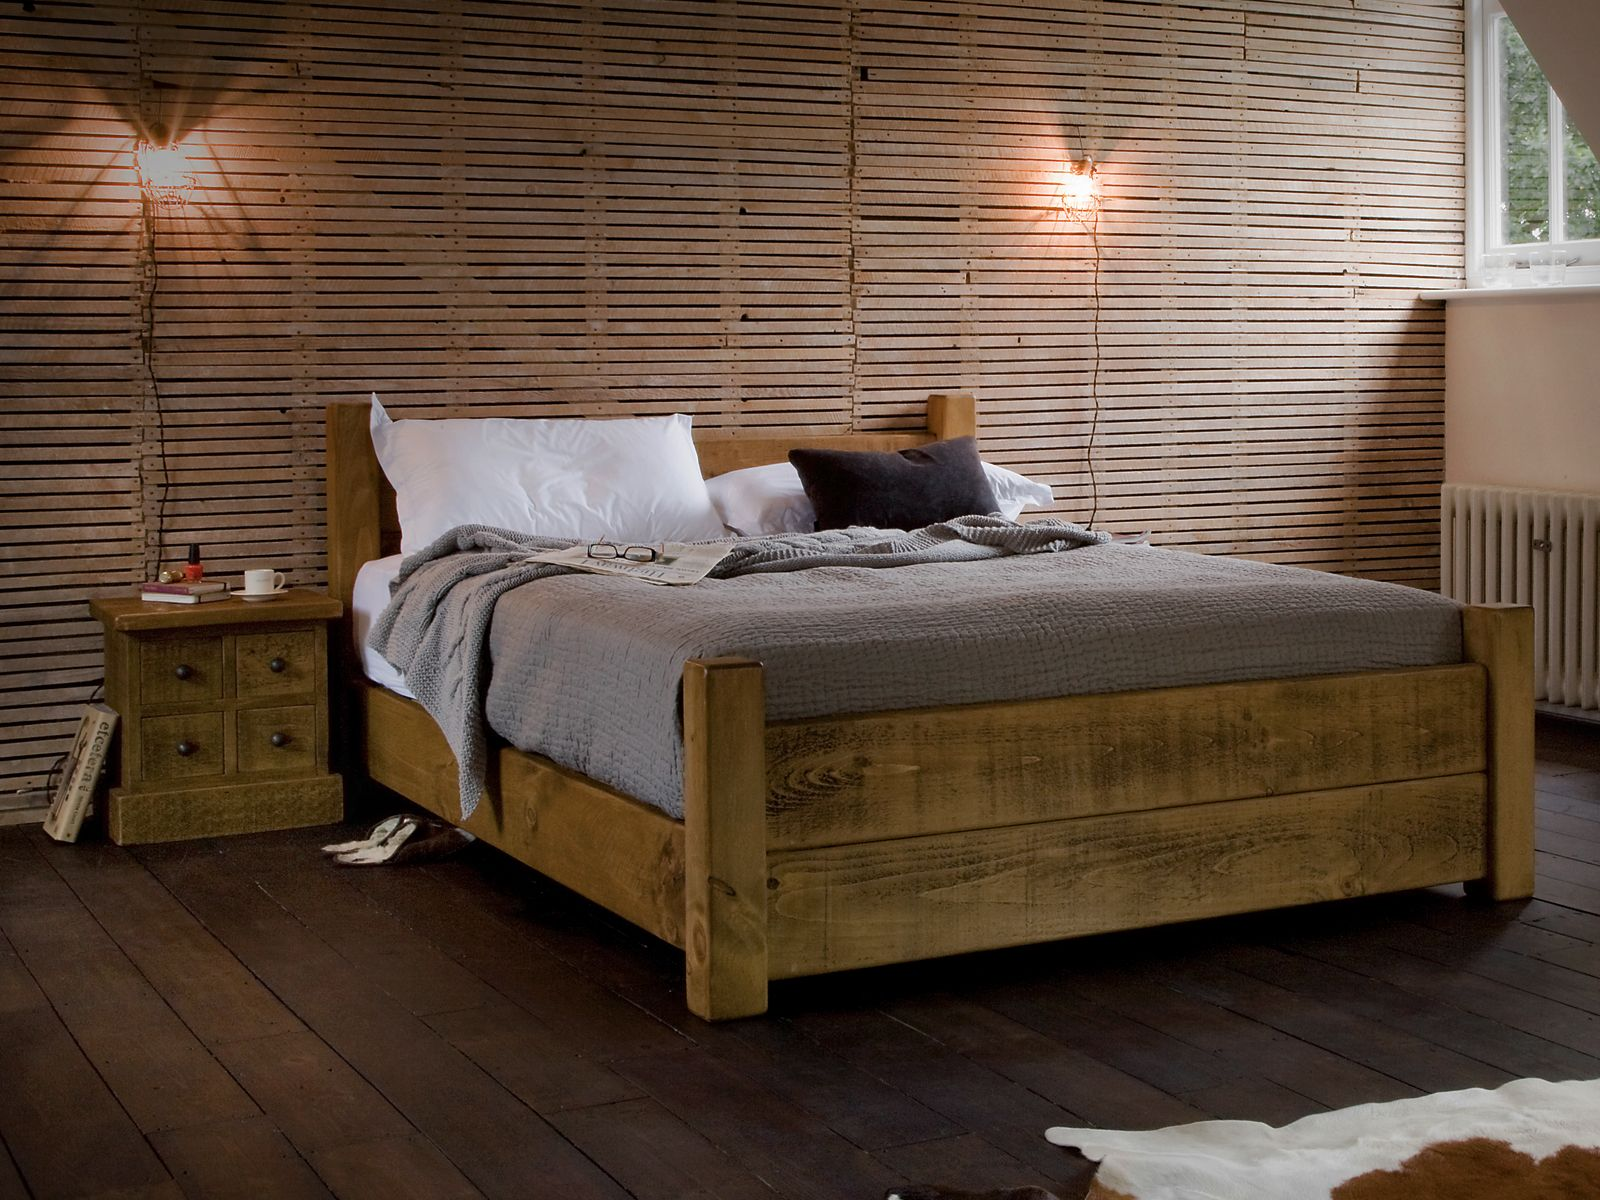 Plank+Loft+Bed | bedroom | Pinterest | Camas, Camas de madera y ...